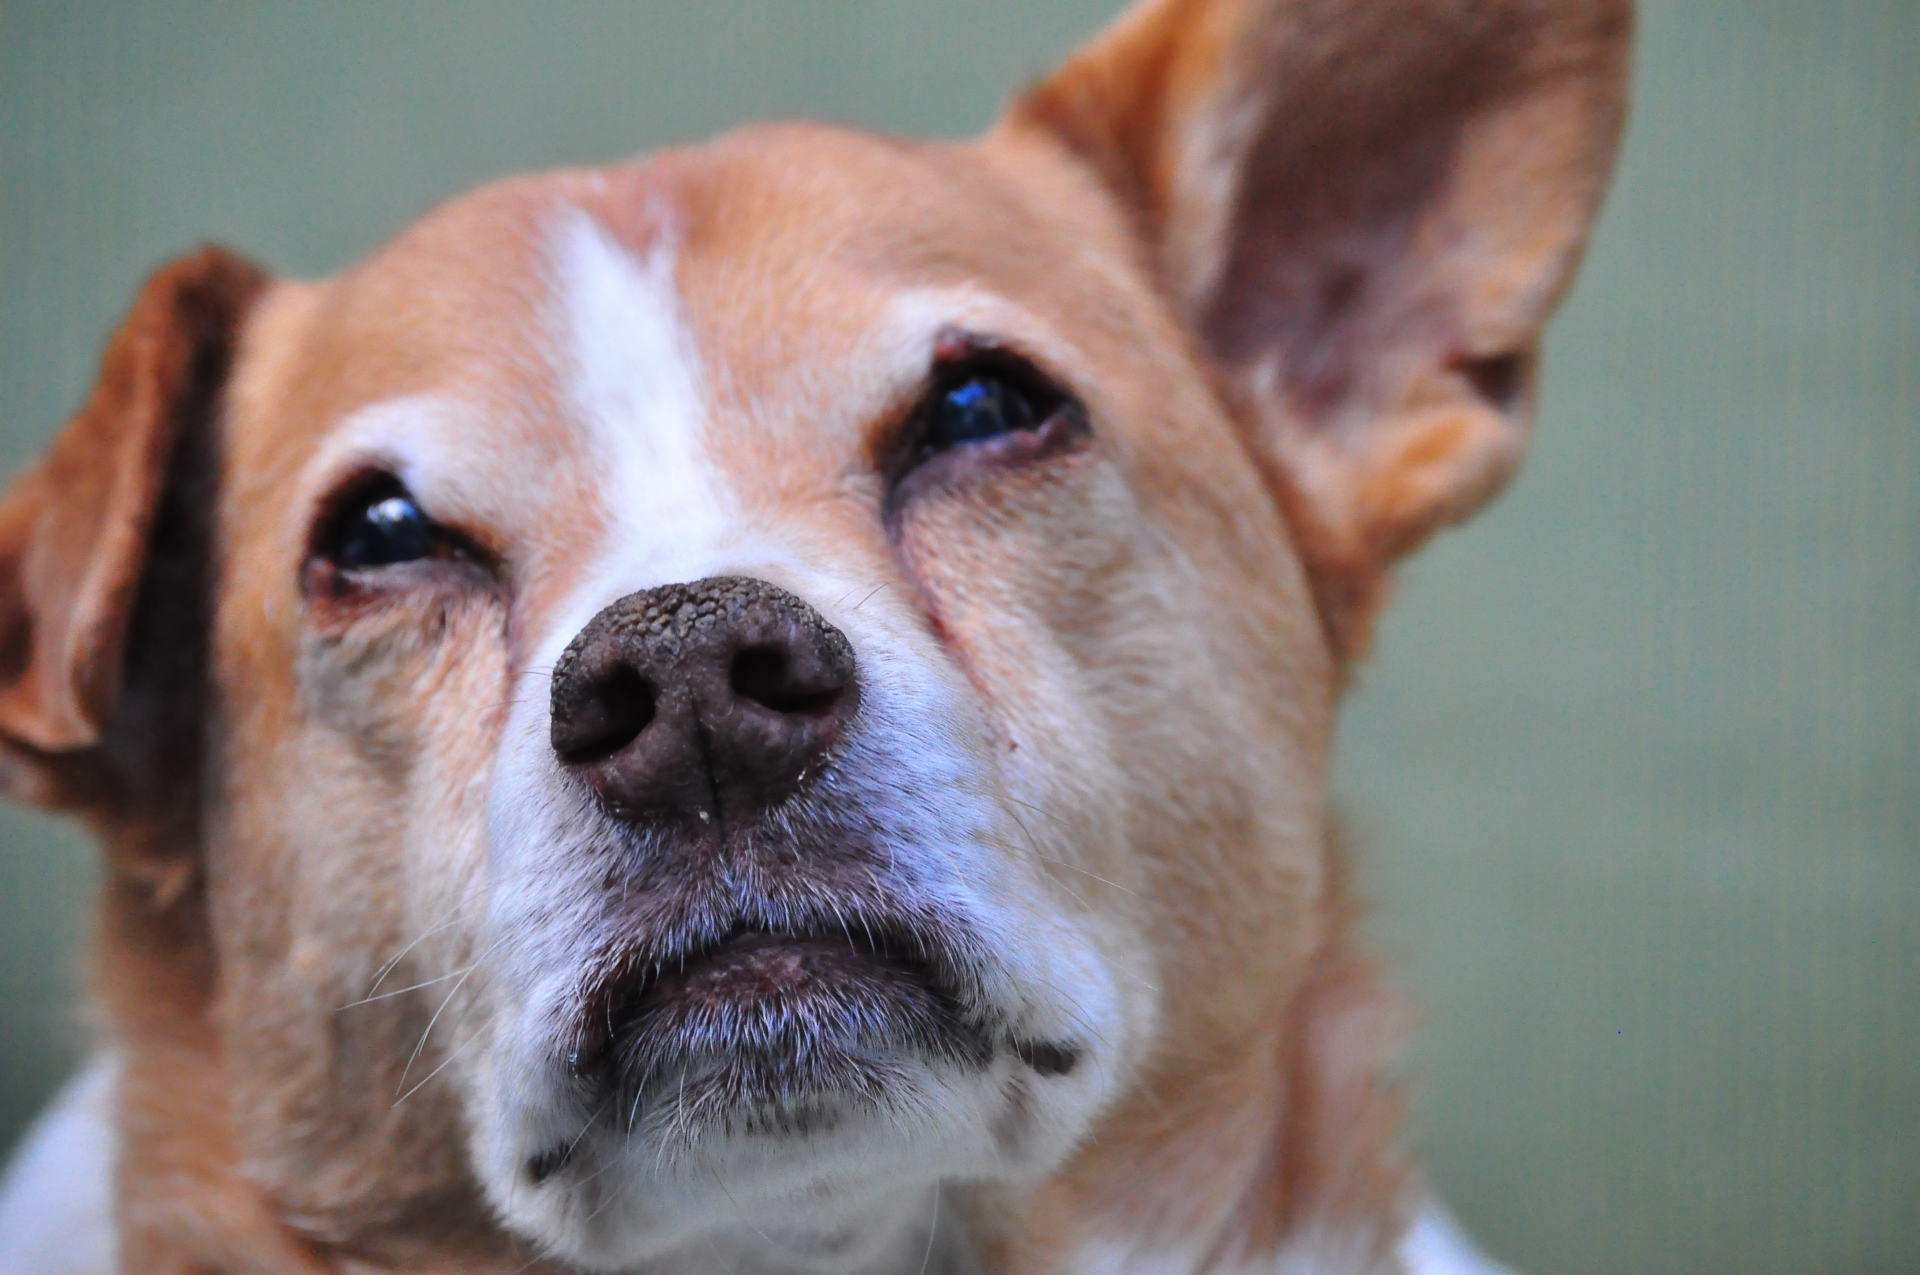 pet loss; losing a pet; coping  wtih losing  a pet; euthanasia; dealing with  pet loss